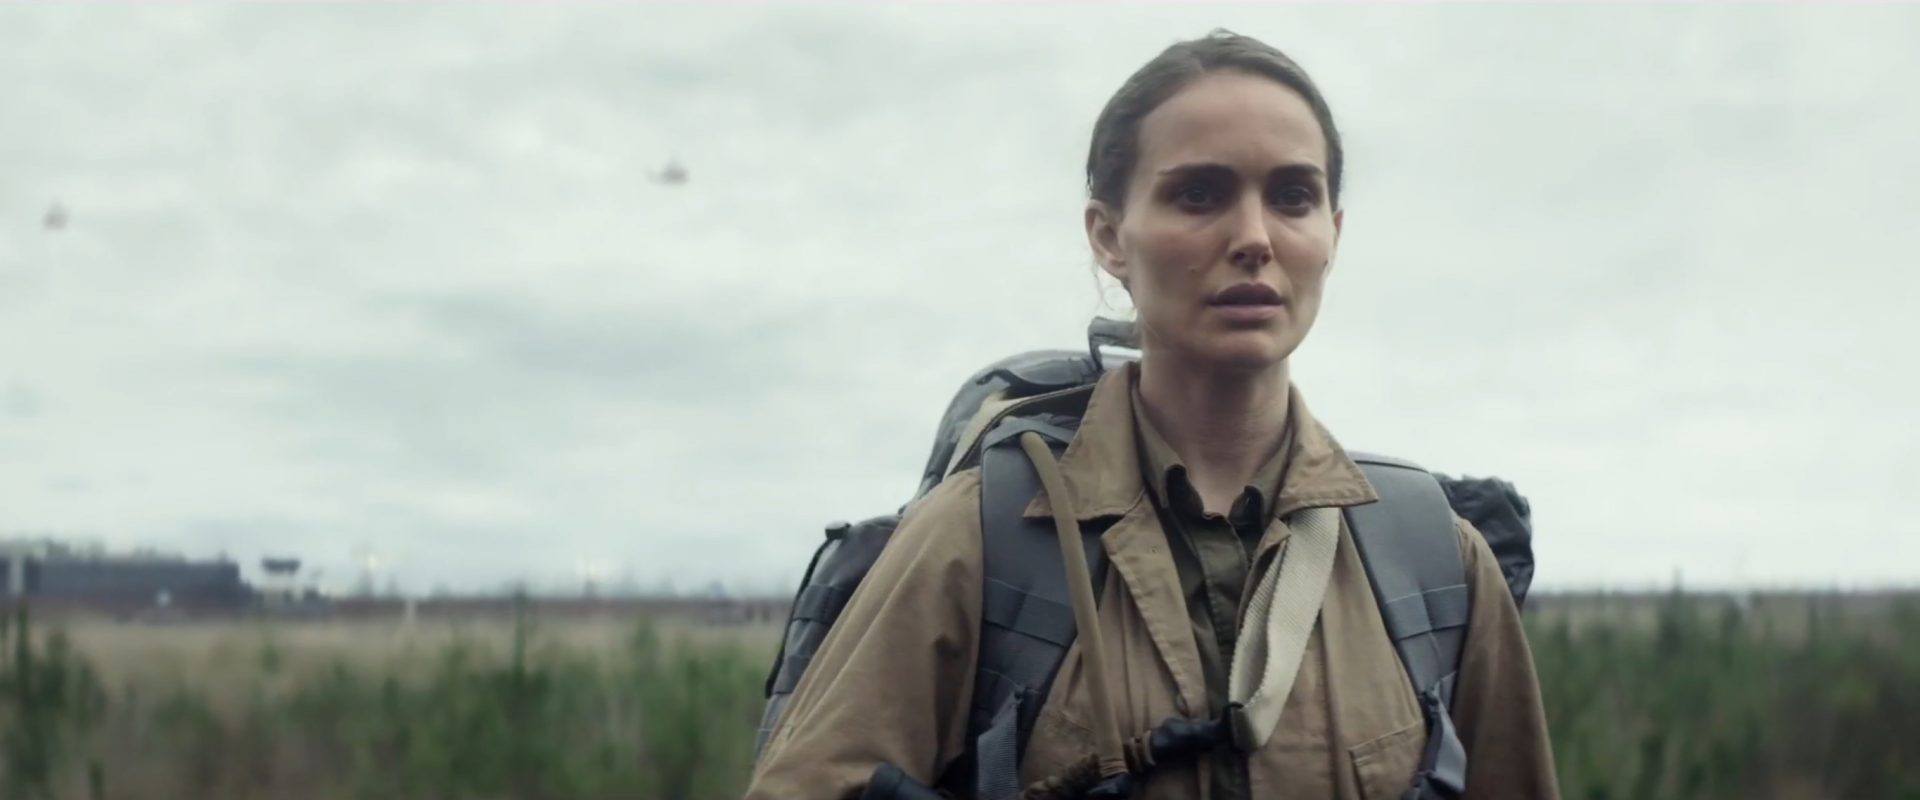 Annihilation Trailer Screen Captures